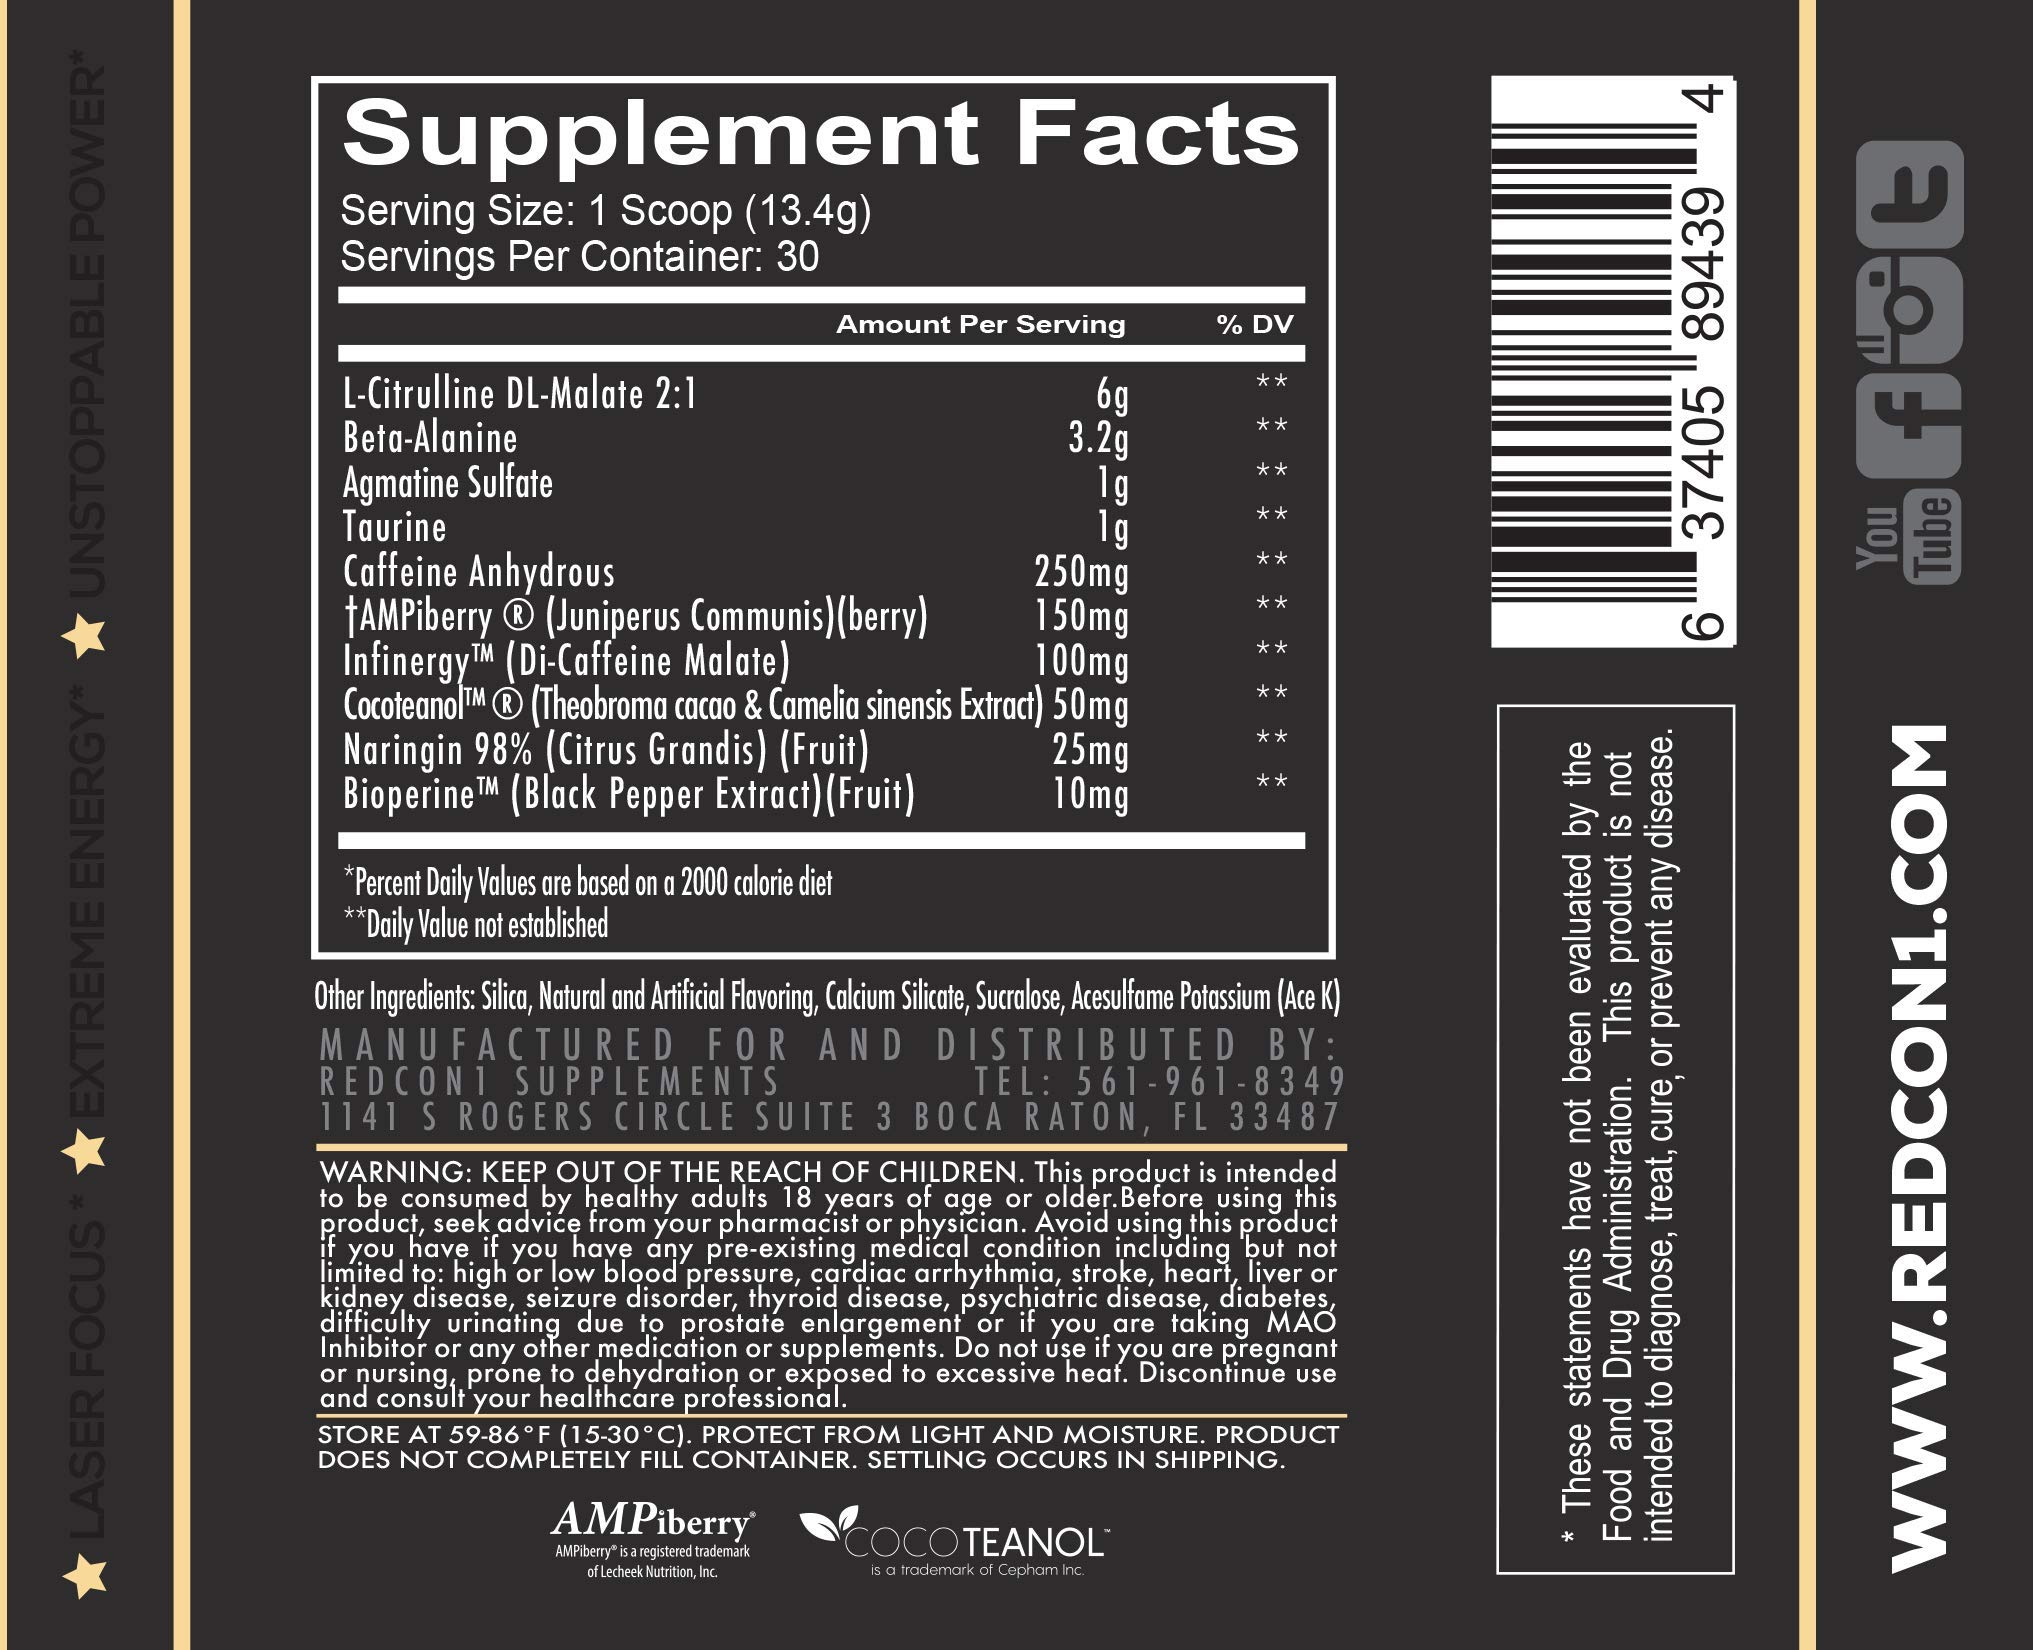 Redcon1 Total War - Pre Workout - 30 Servings - Newly Formulated (Firecracker) by Redcon1 (Image #2)